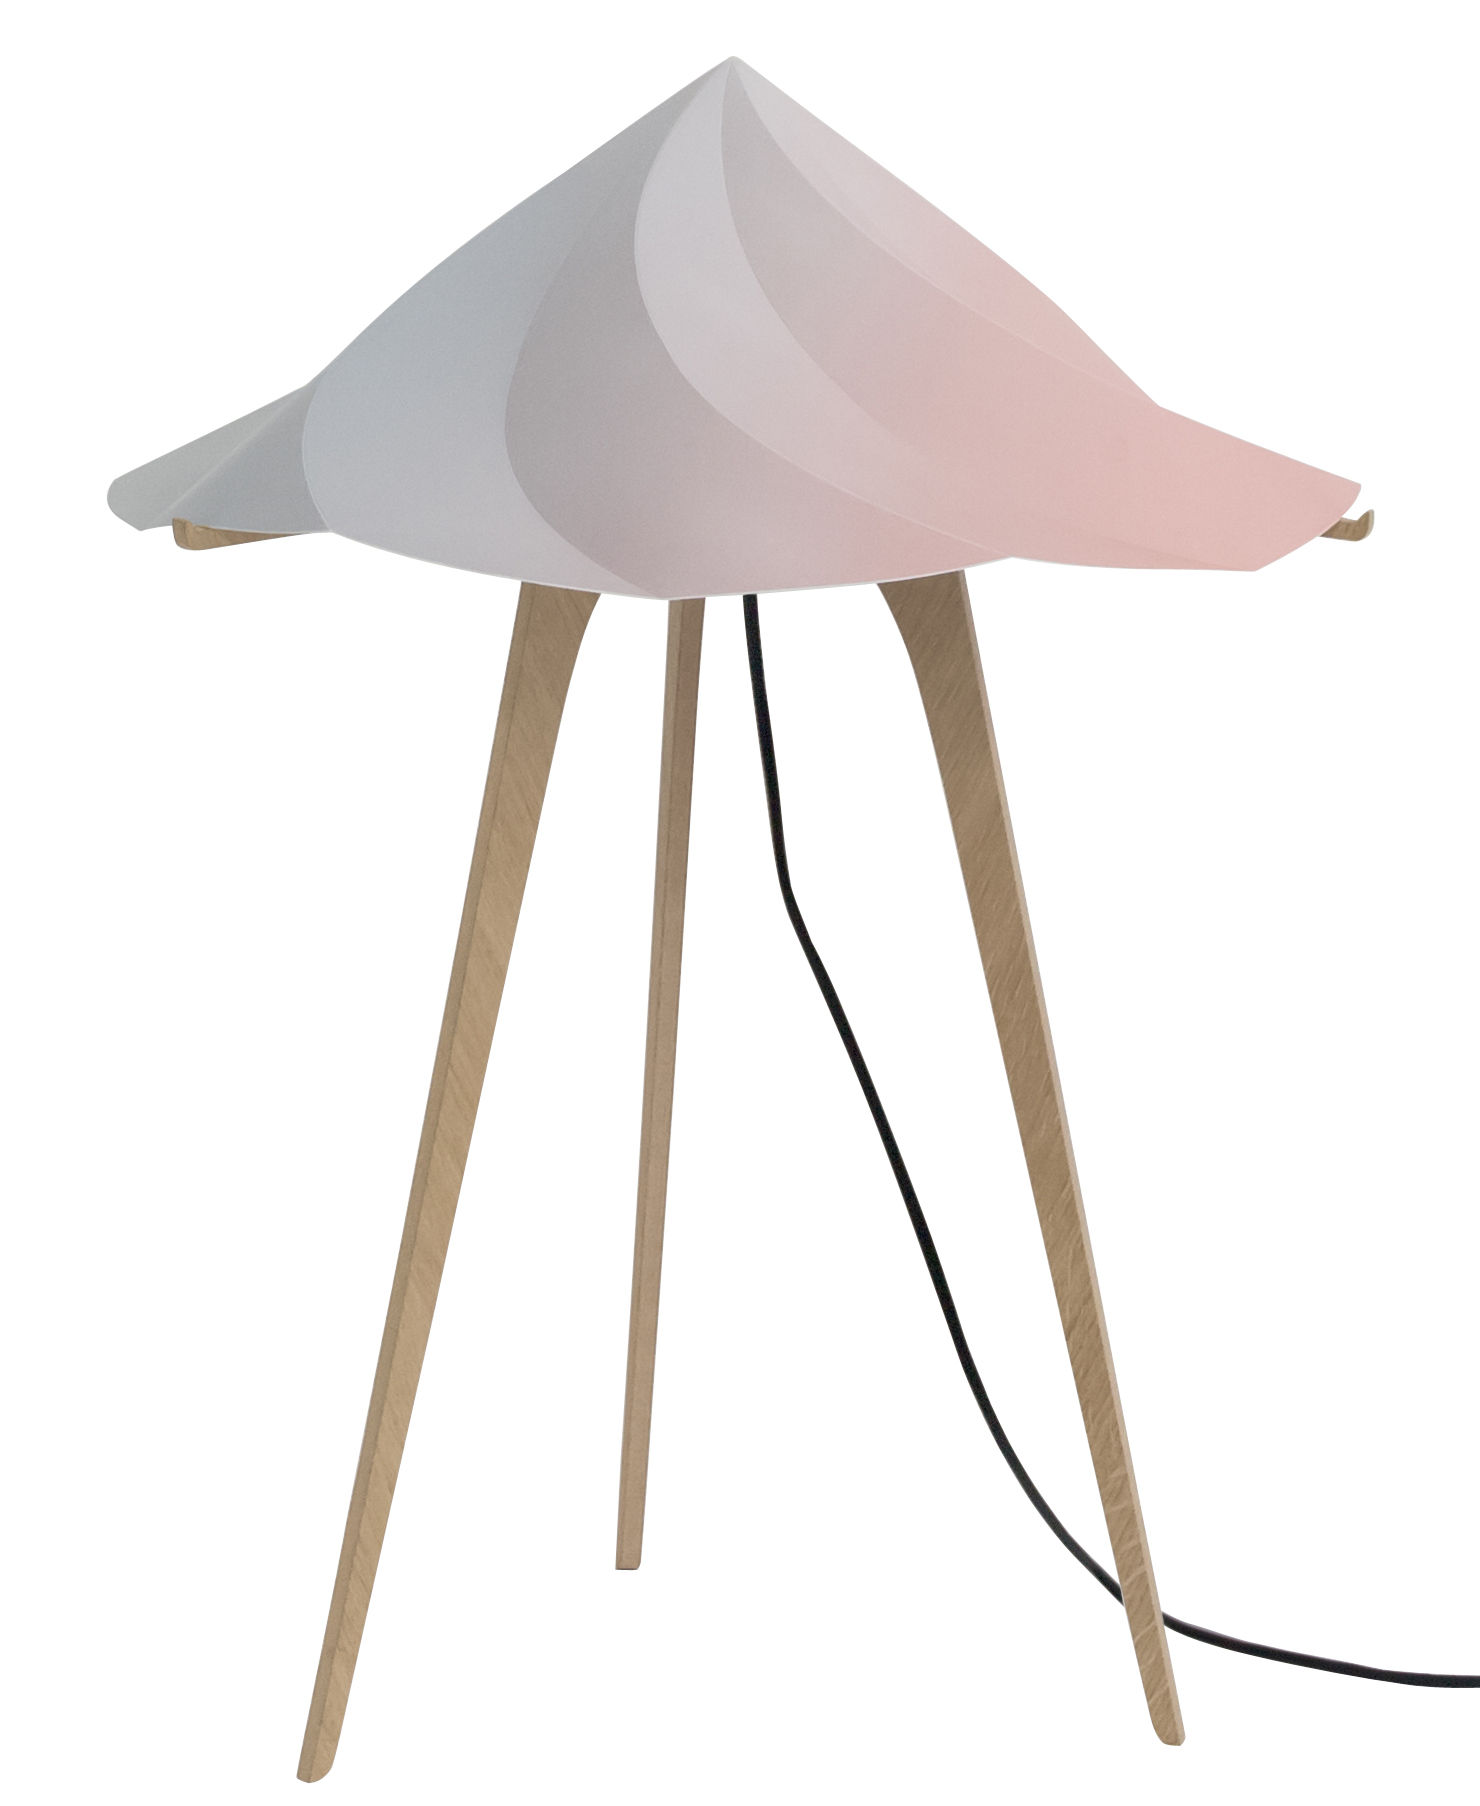 Lighting - Table Lamps - Chantilly Large Lamp by Moustache - Multicolor - Oak plywood, Recycled polypropylene